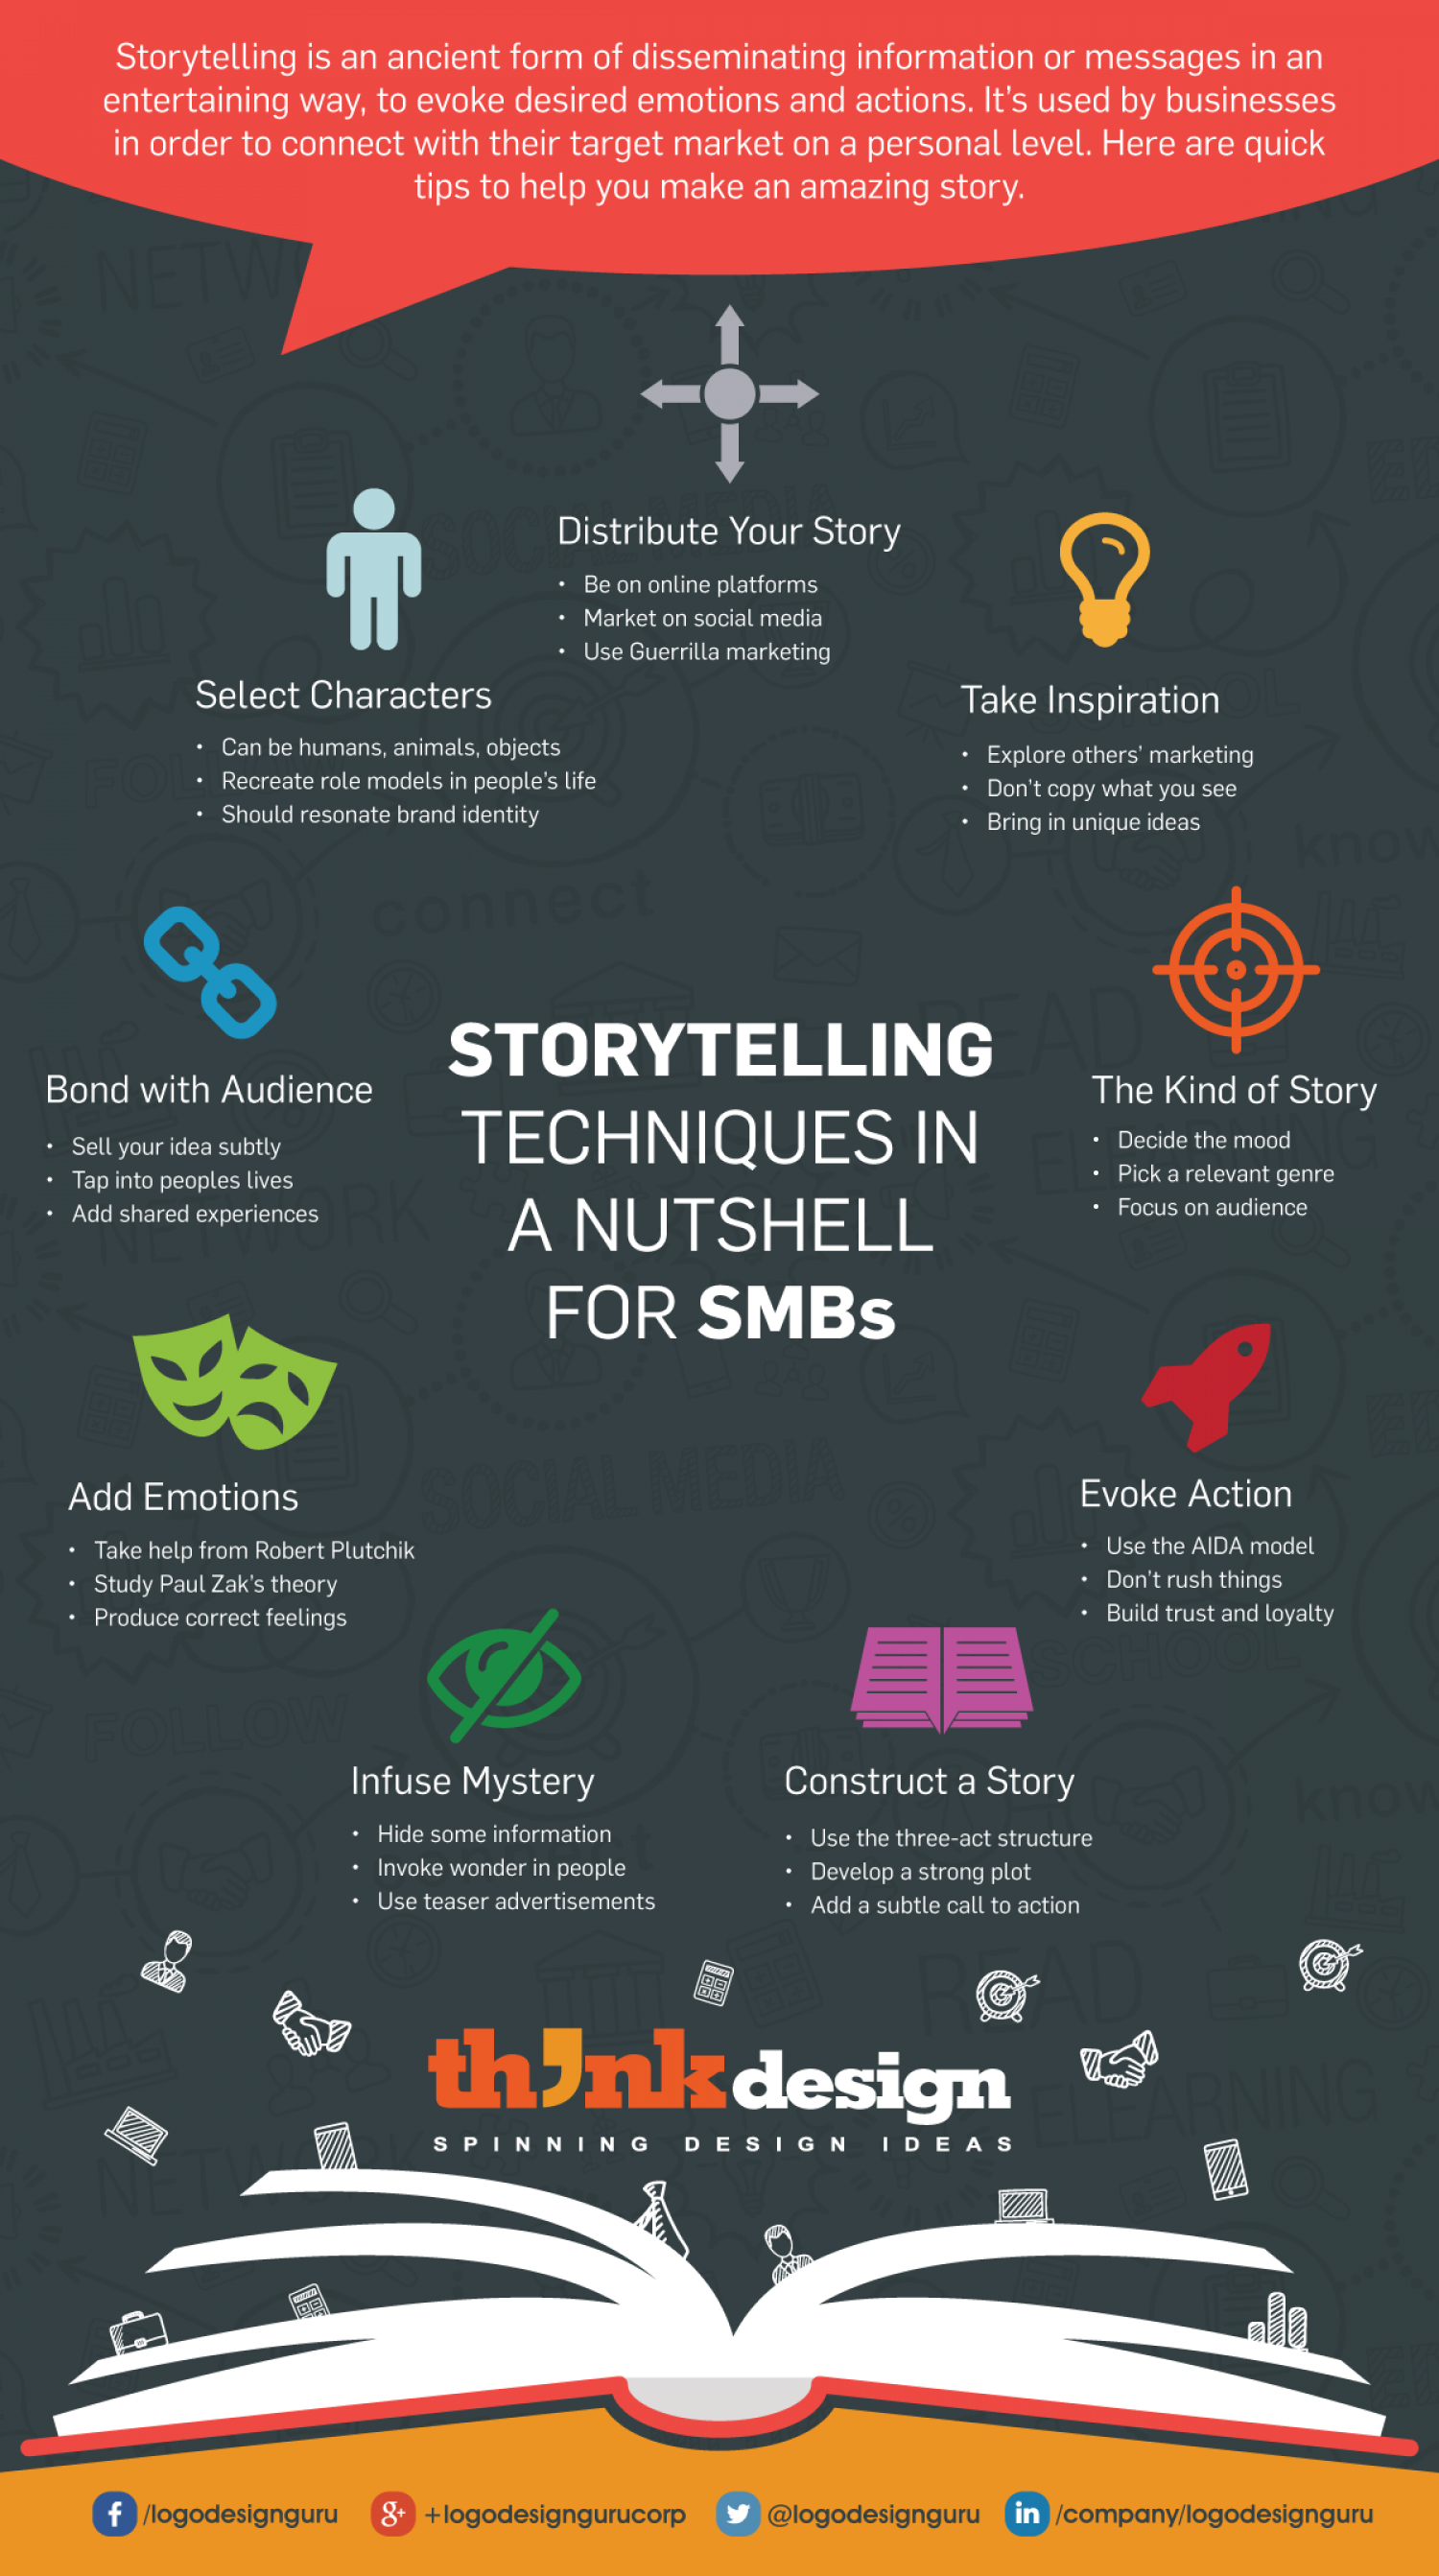 Storytelling Techniques in a Nutshell for SMBs Infographic